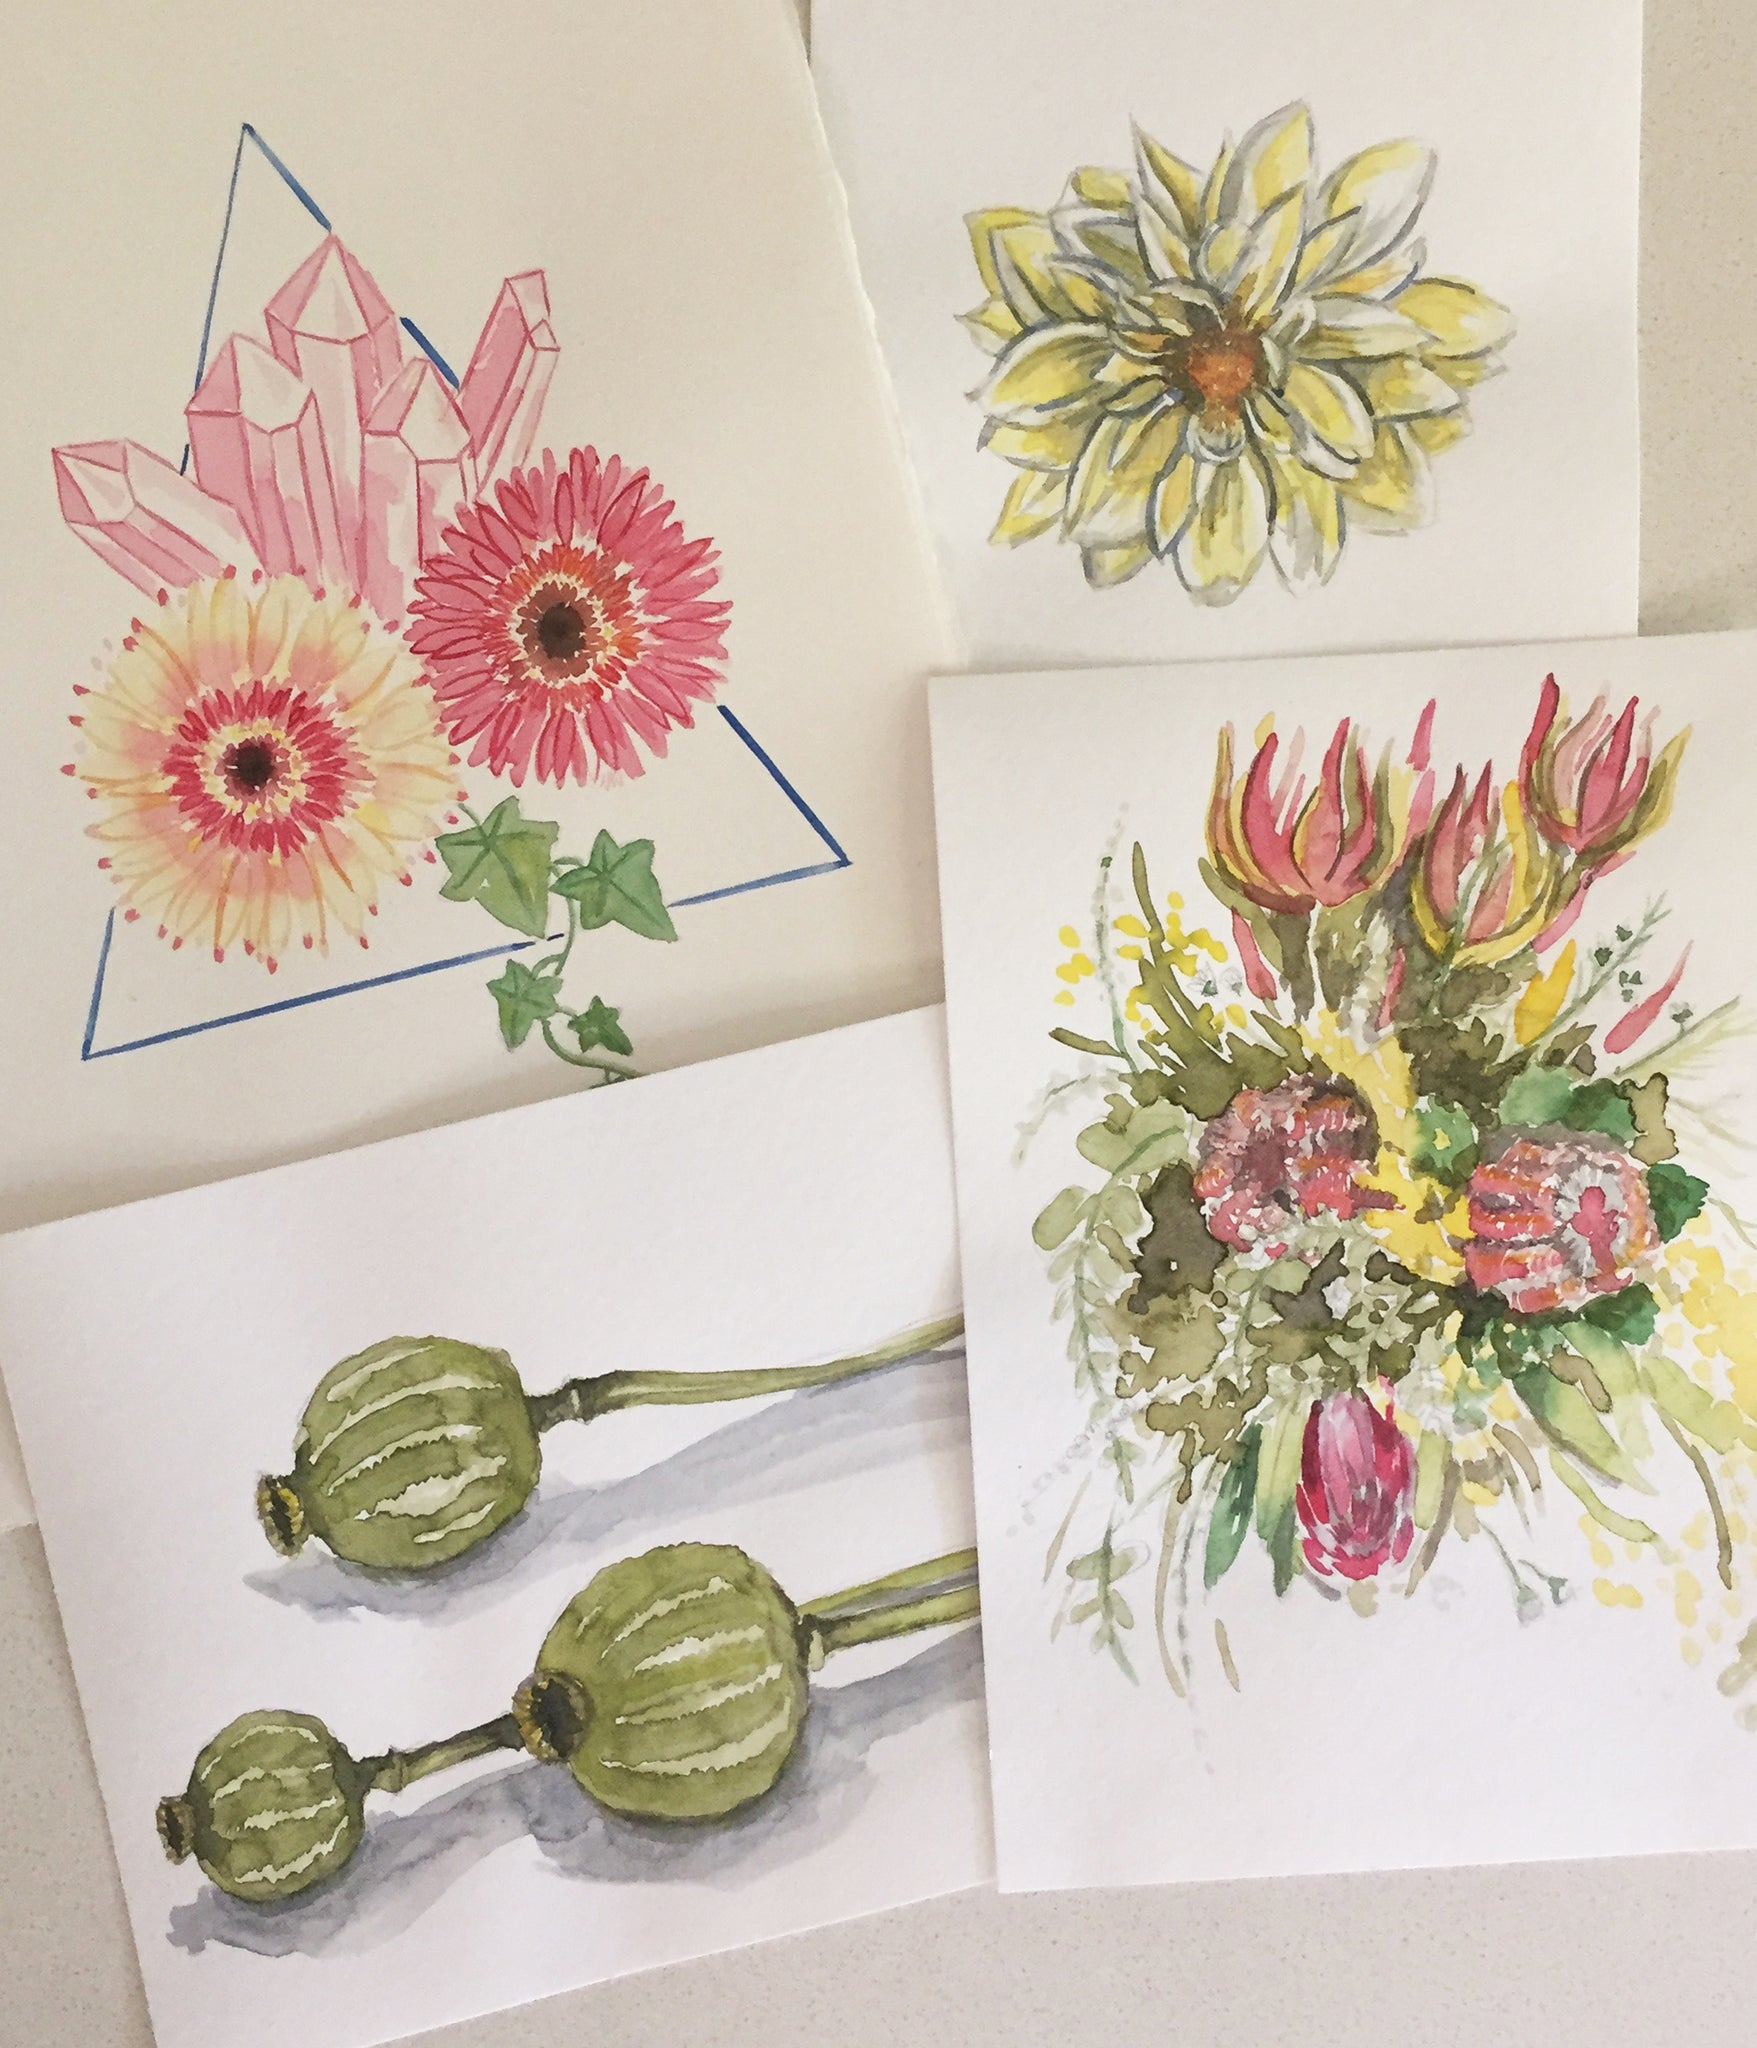 Floral Watercolours - September 22